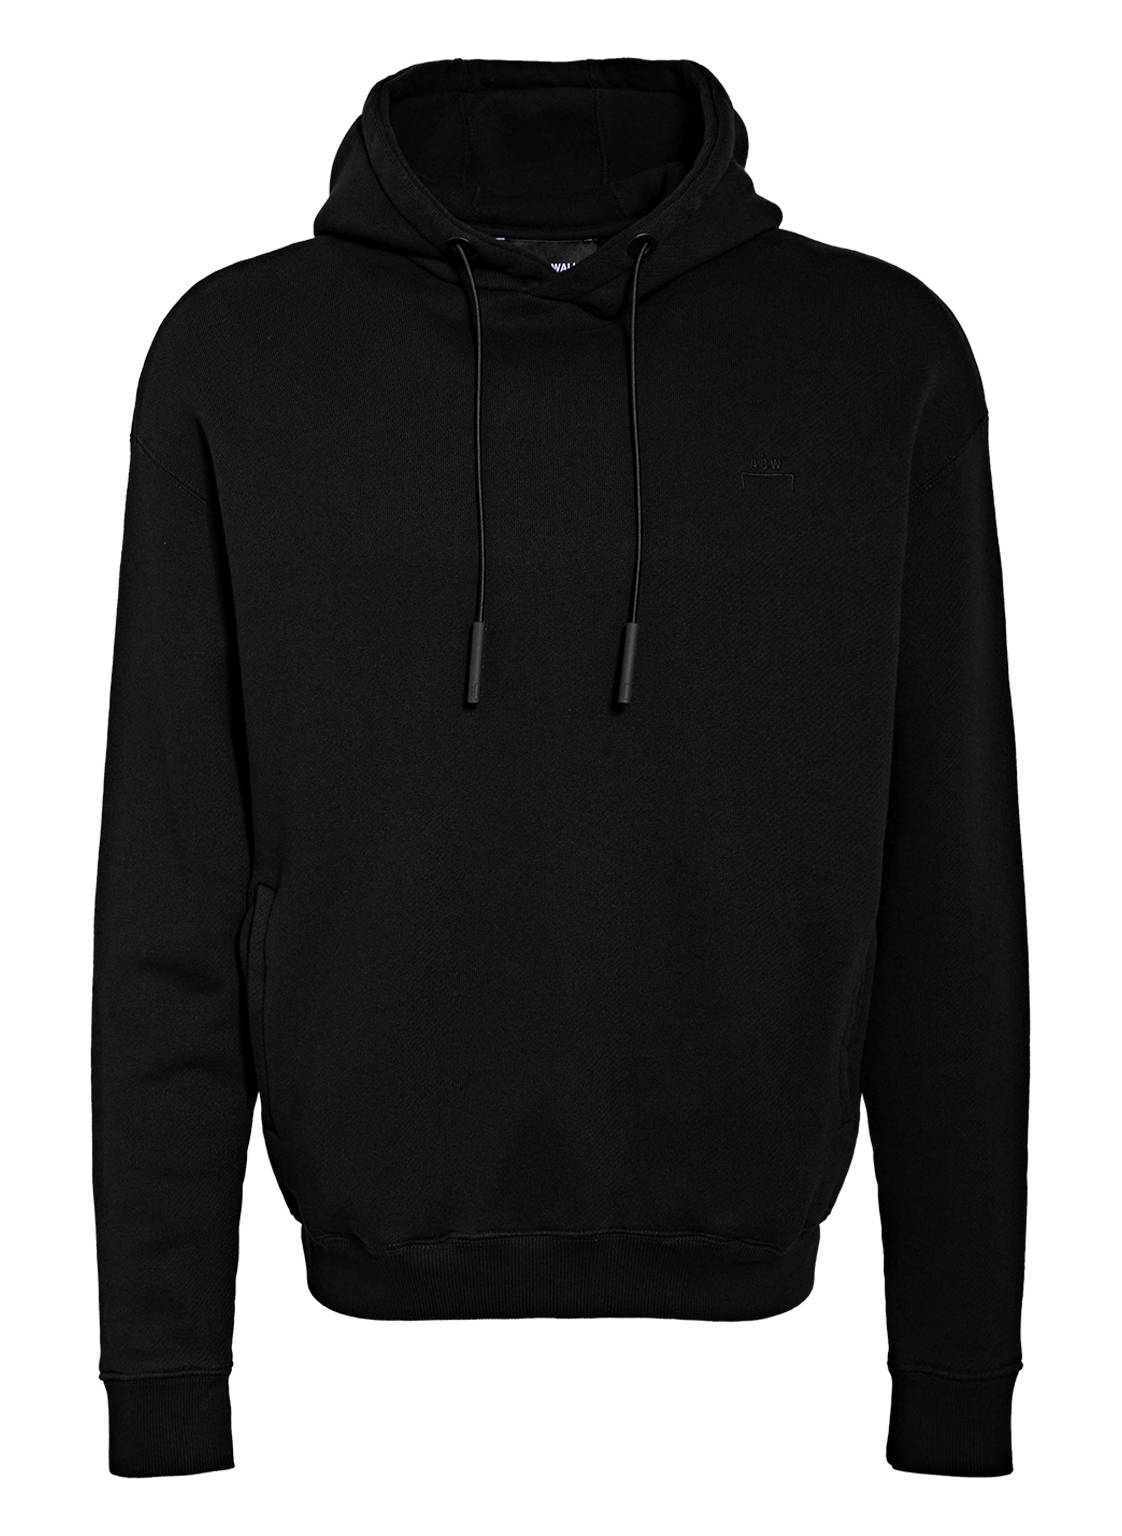 Image of A-Cold-Wall* Hoodie schwarz